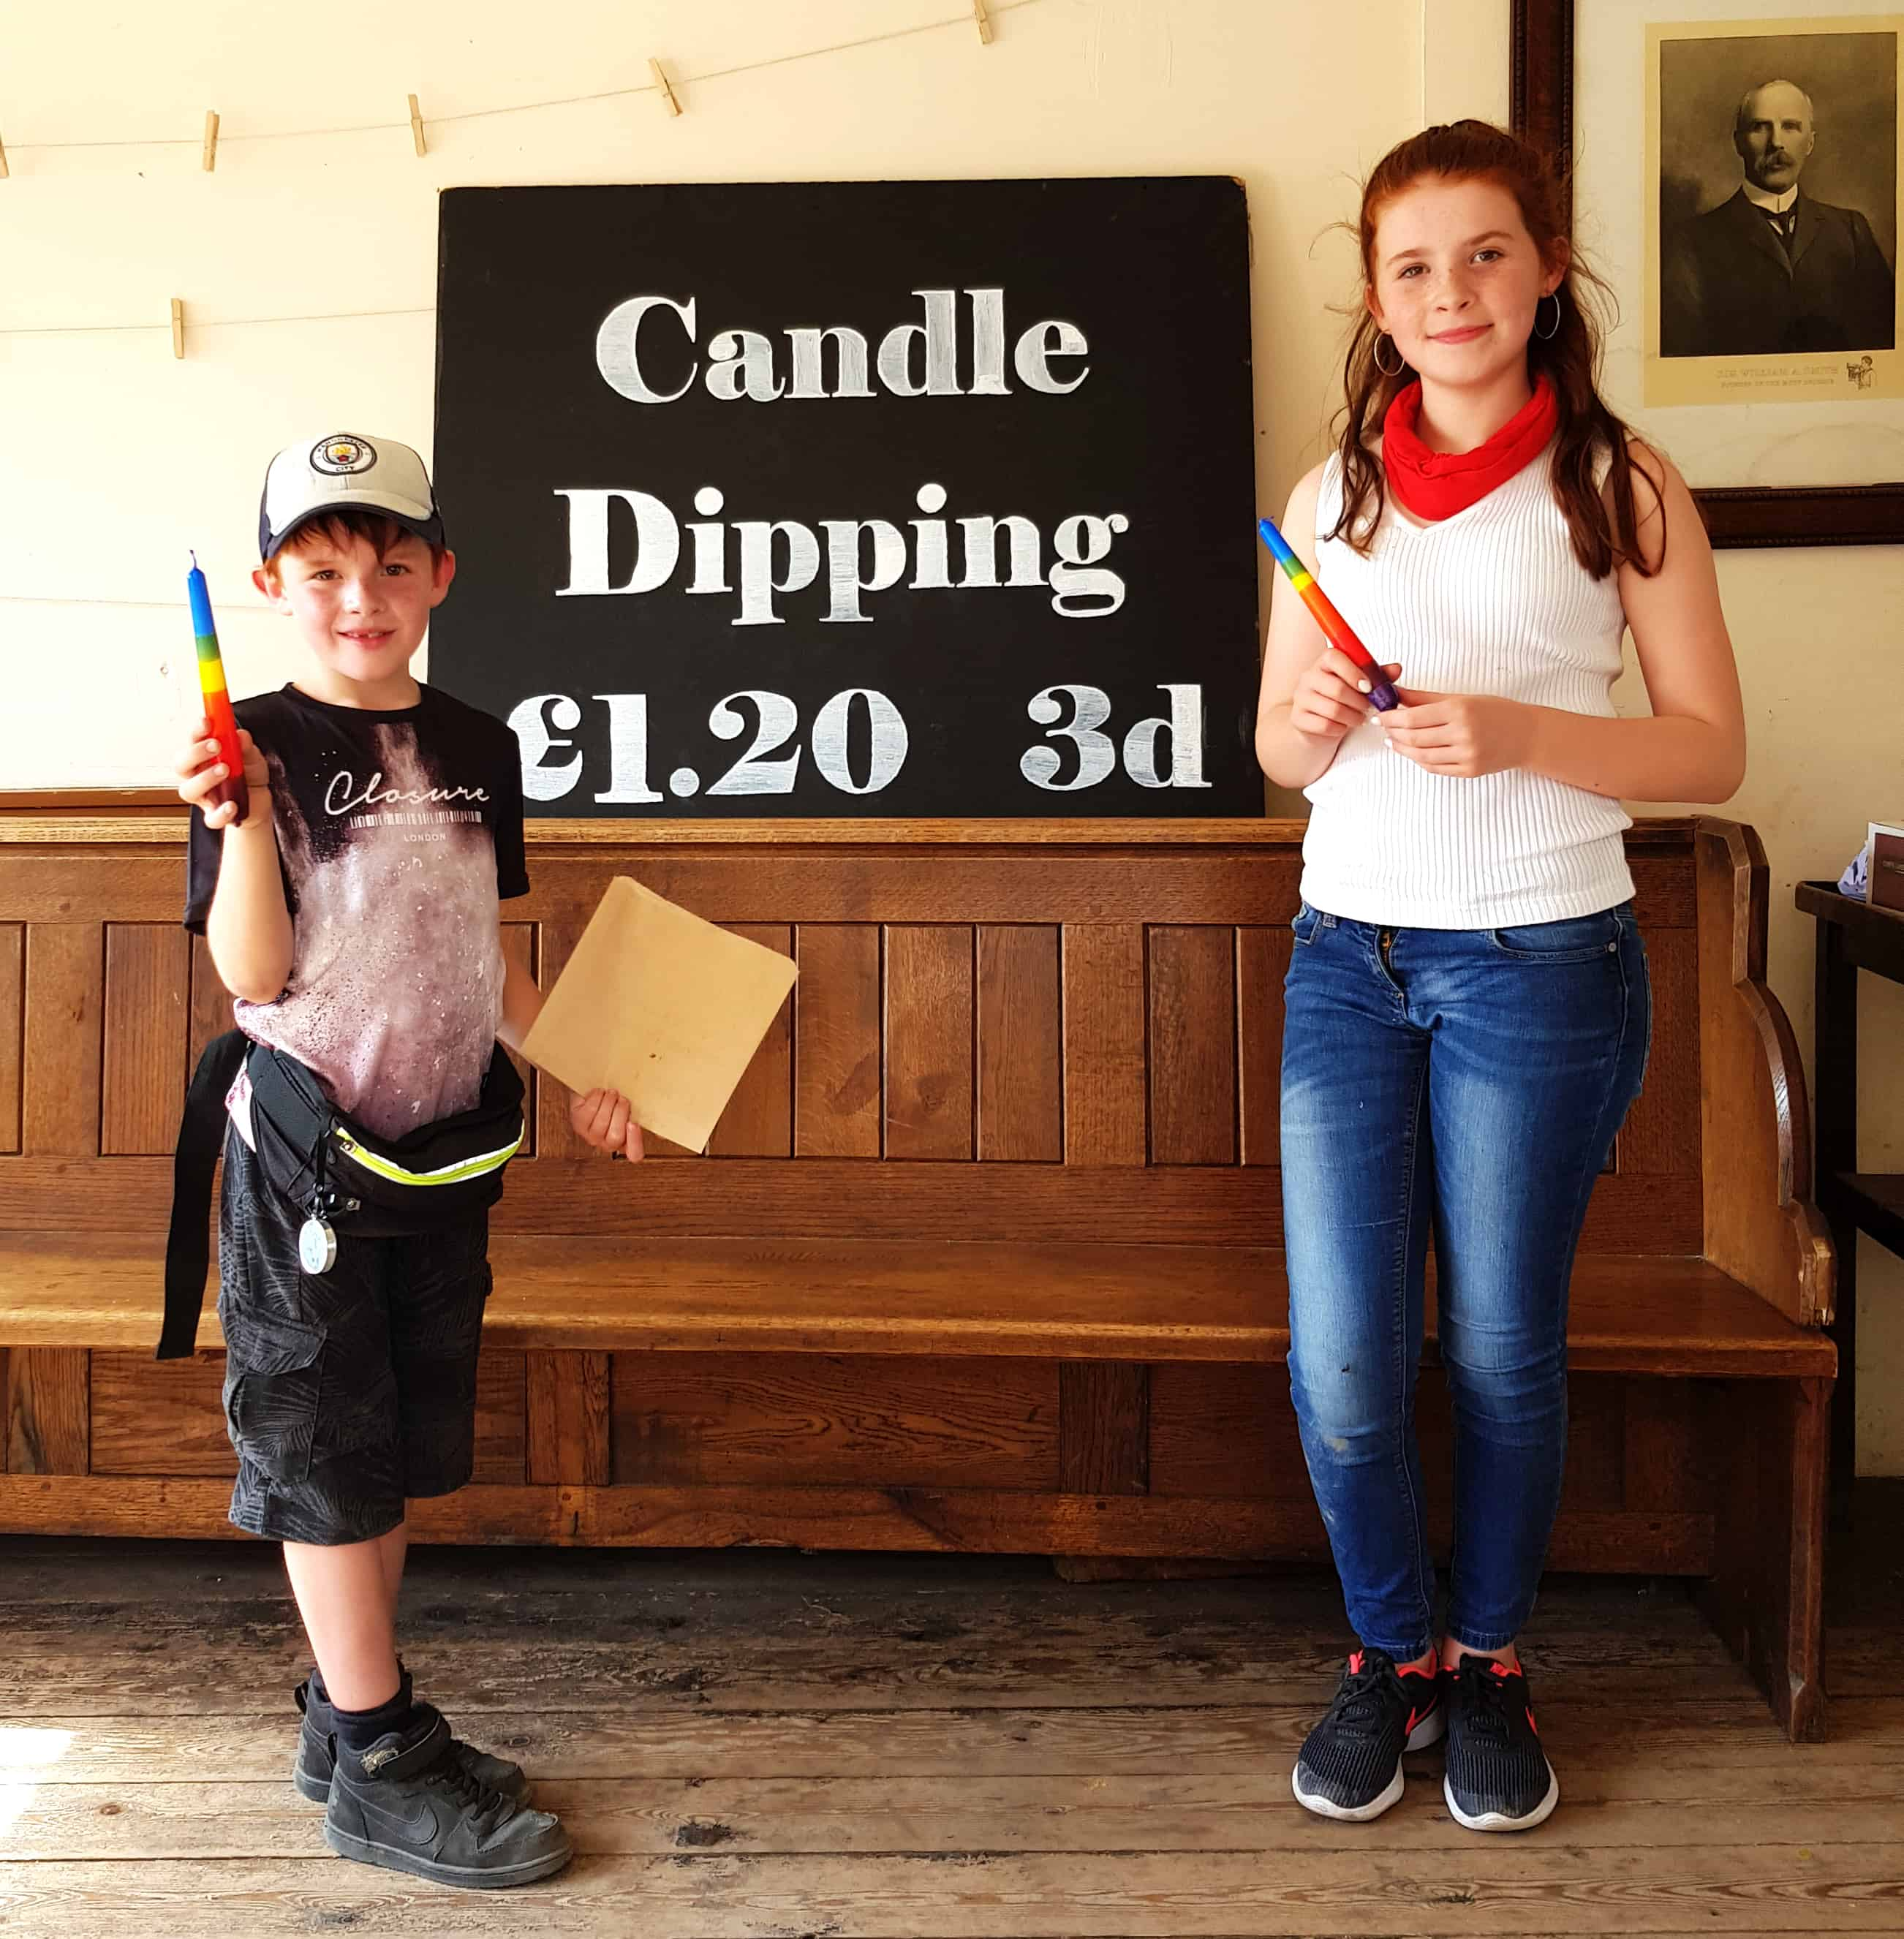 Kids showing their candles after candle dipping